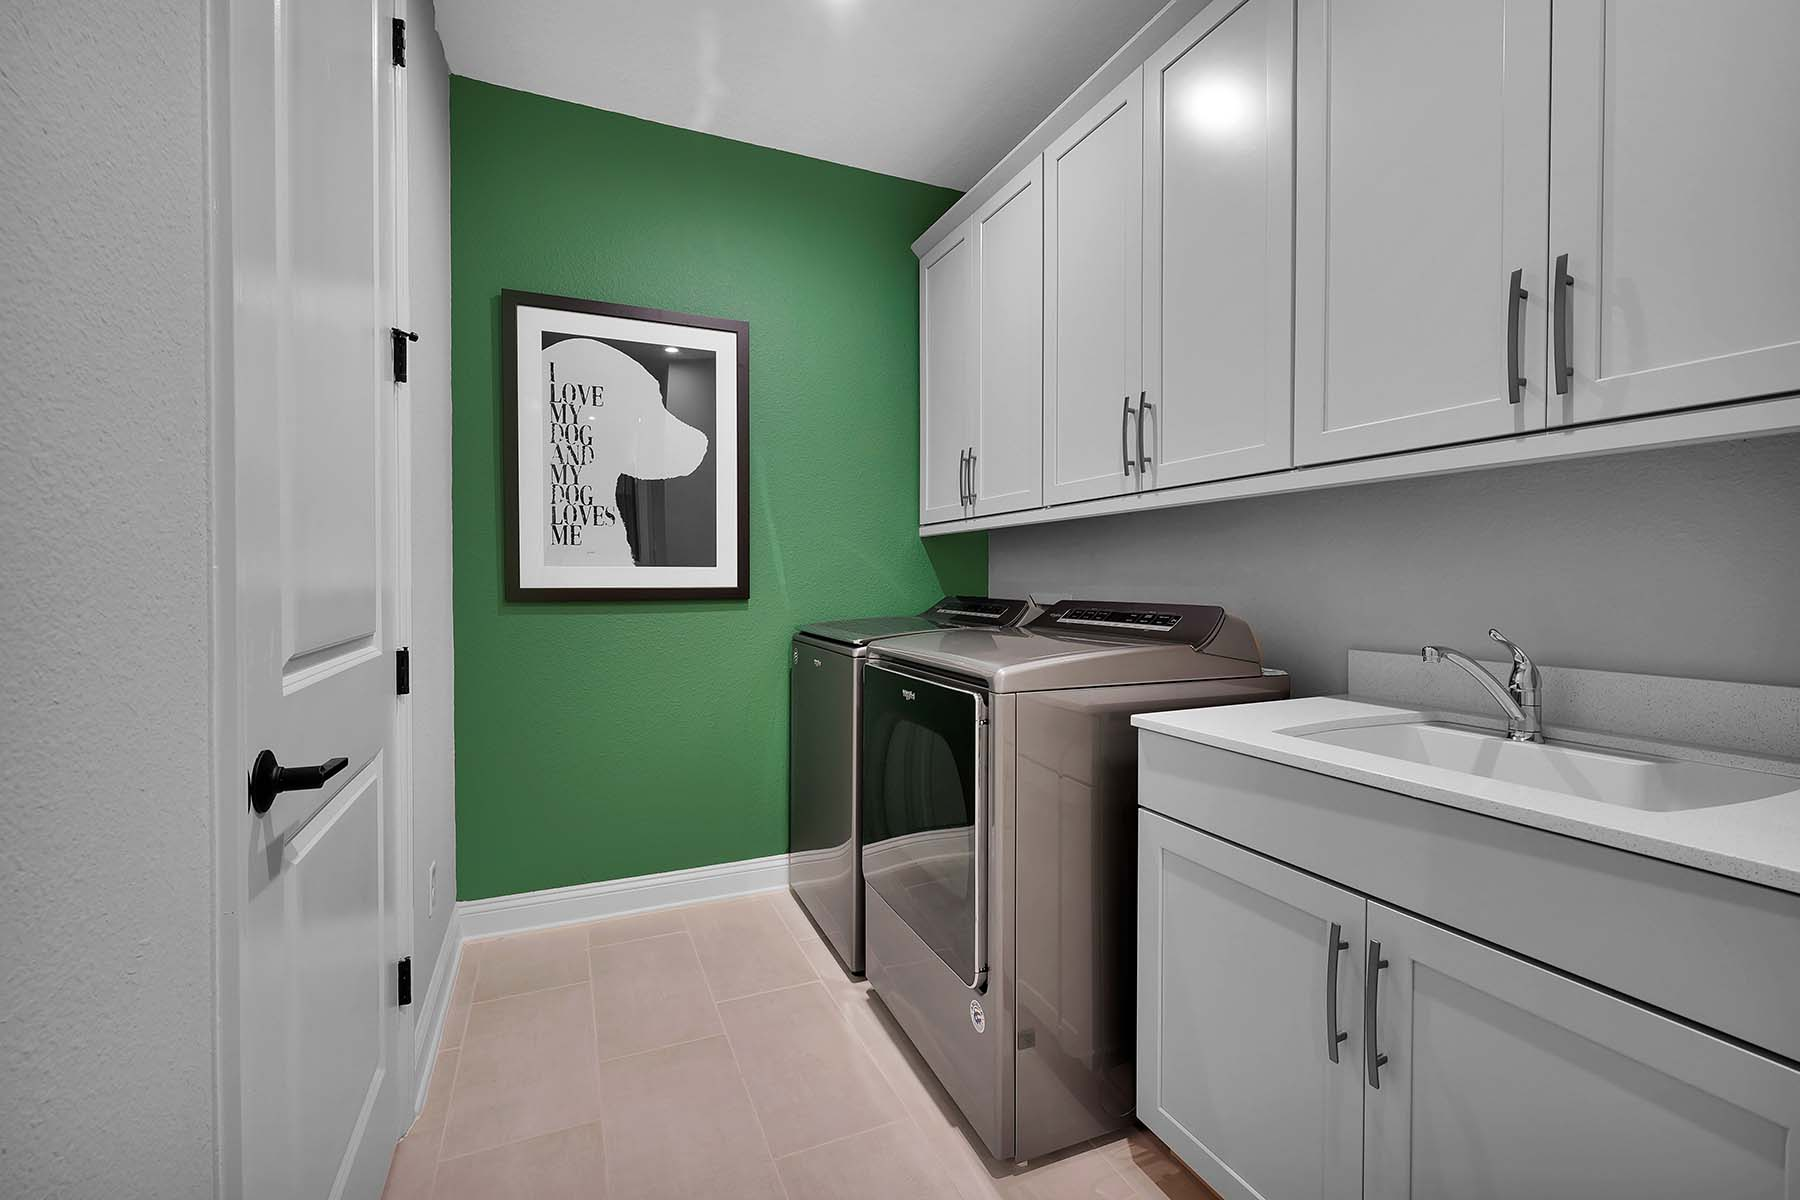 Talise Plan Laundry at Pablo Cove in Jacksonville Florida by Mattamy Homes